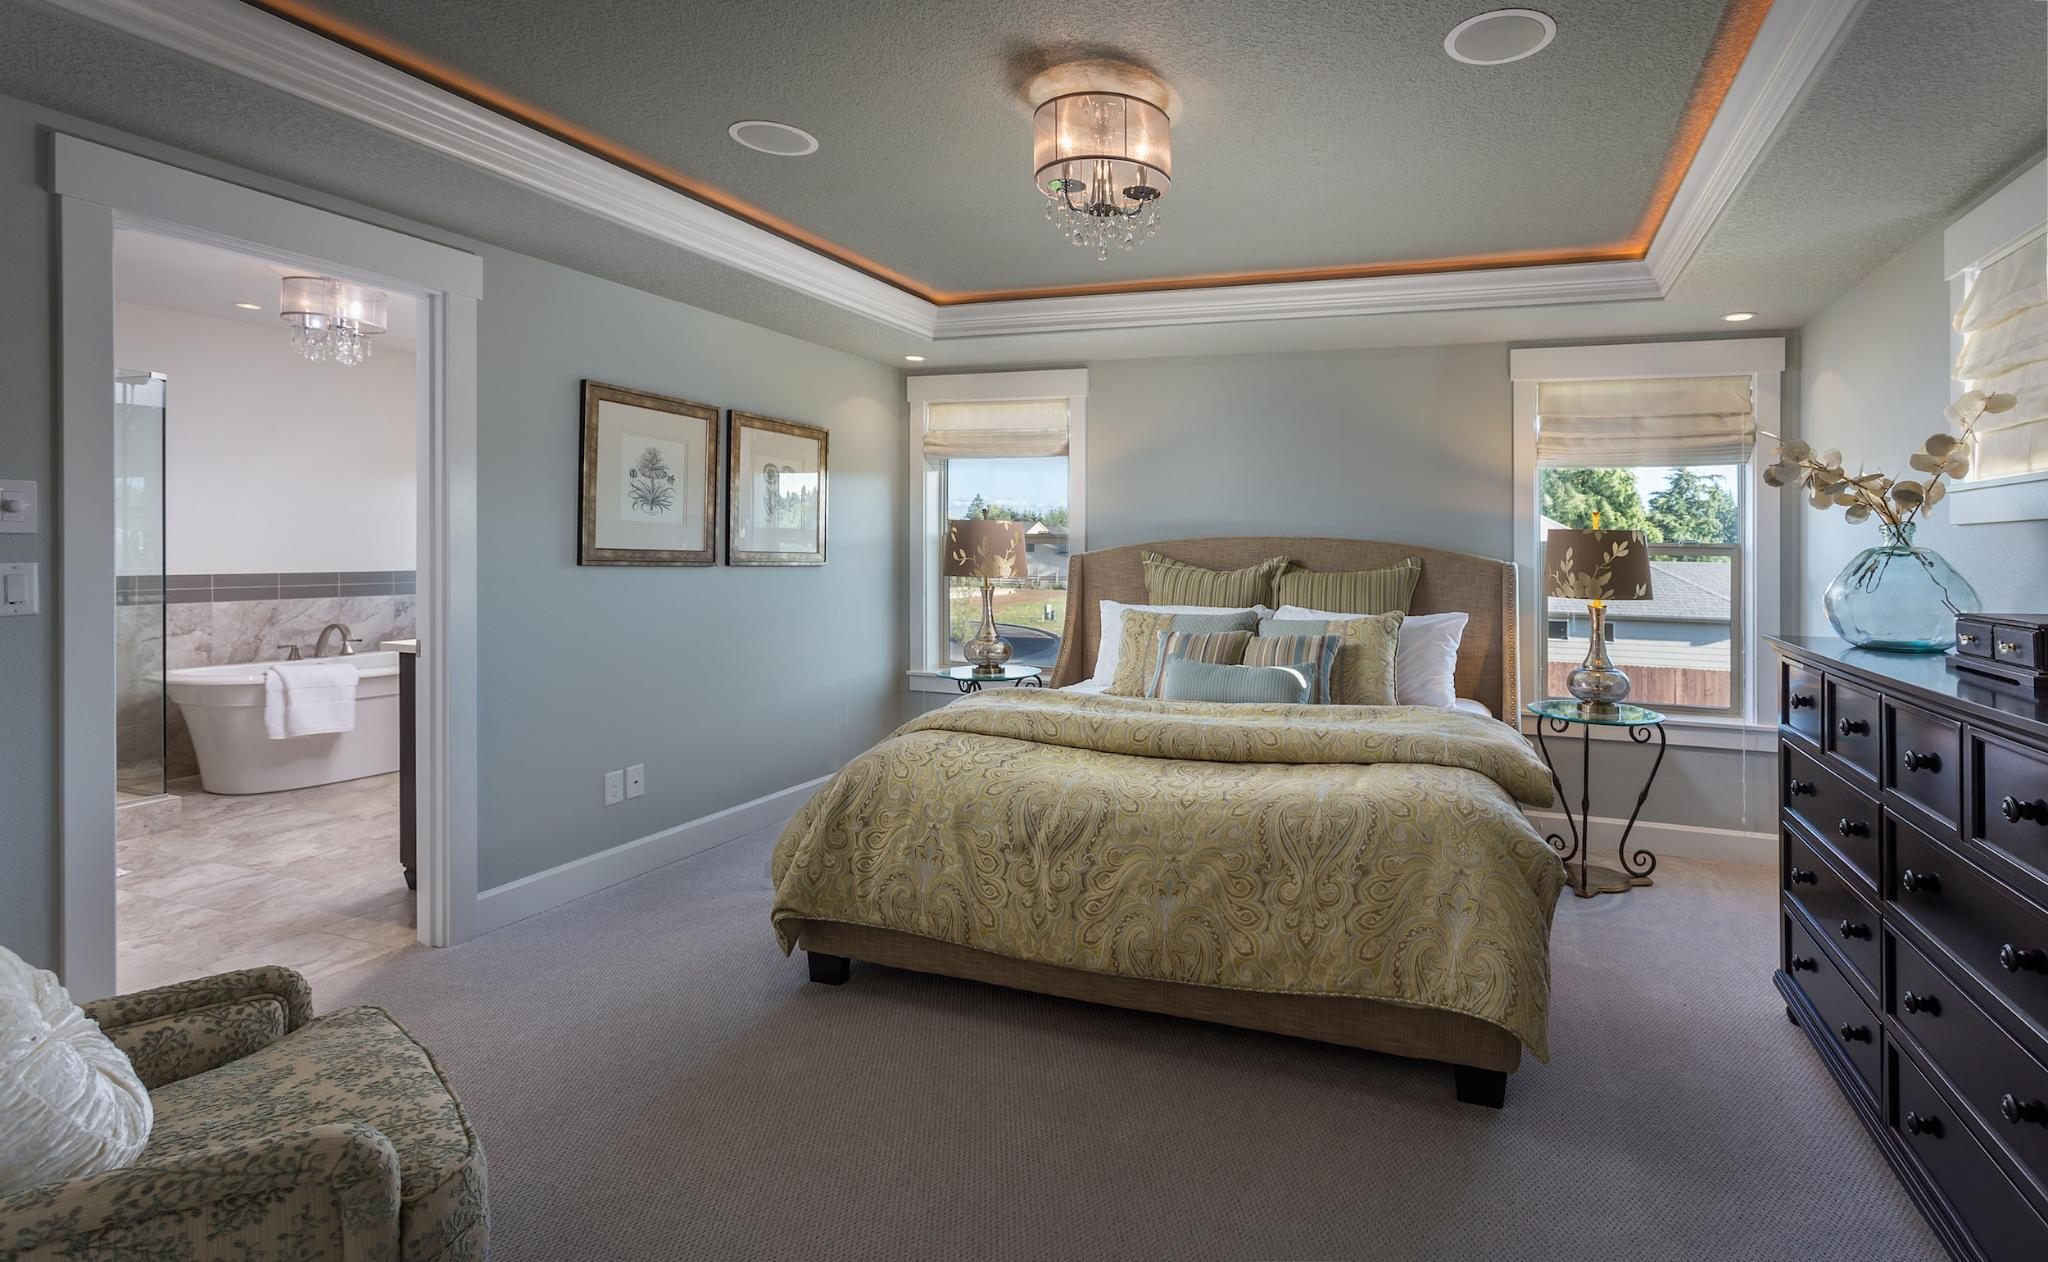 Bedroom featured in the Grandview By New Tradition Homes in Yakima, WA